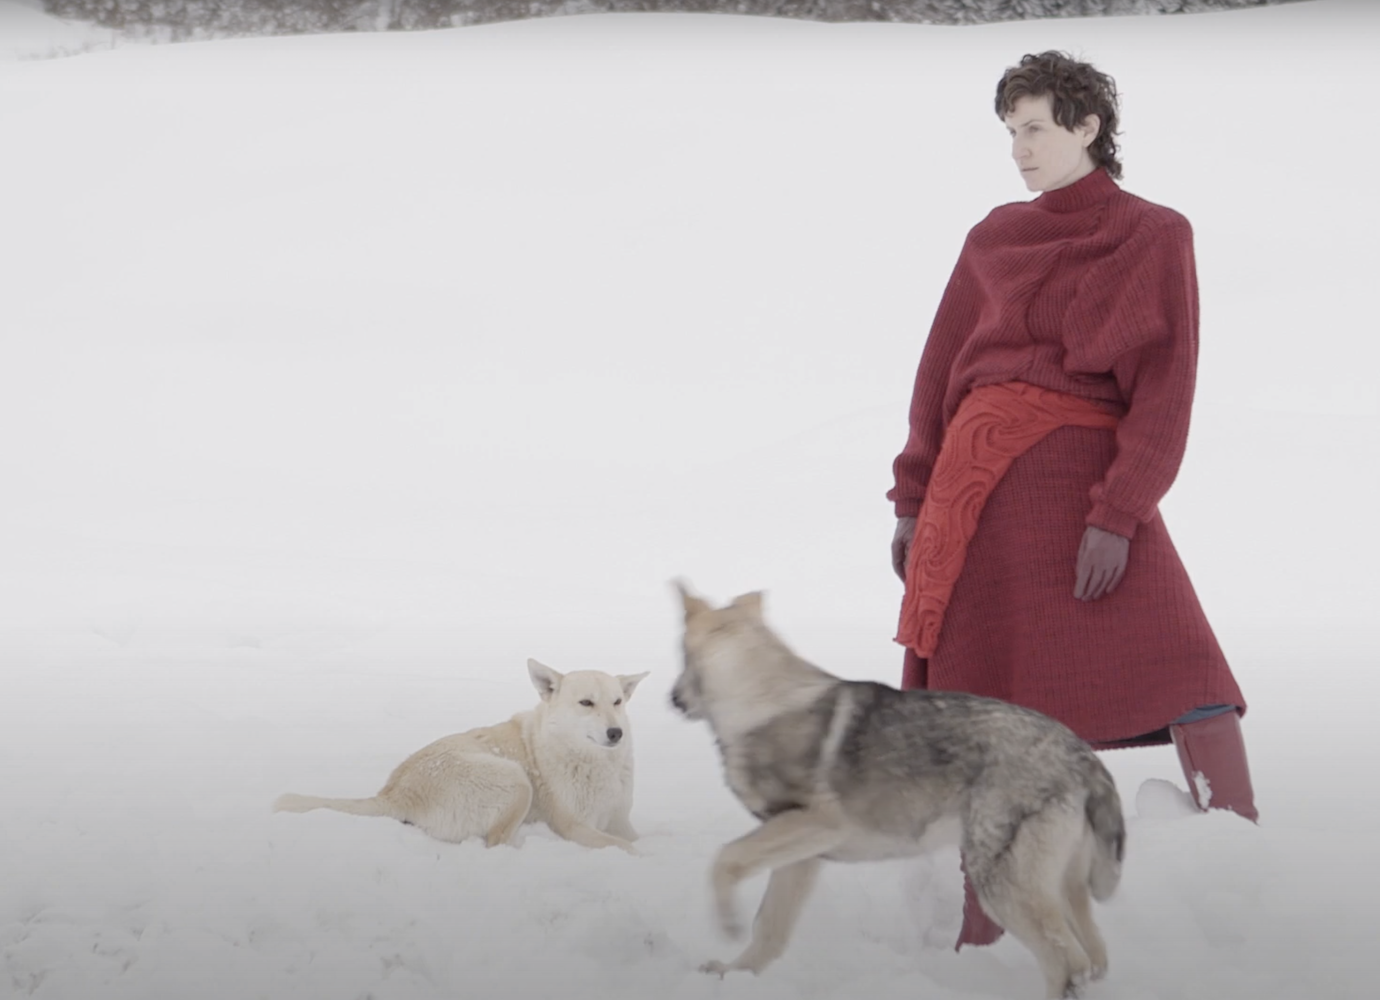 Situationist takes you to Georgia's Svaneti mountain region with the video launch of their FW 21/22 collection